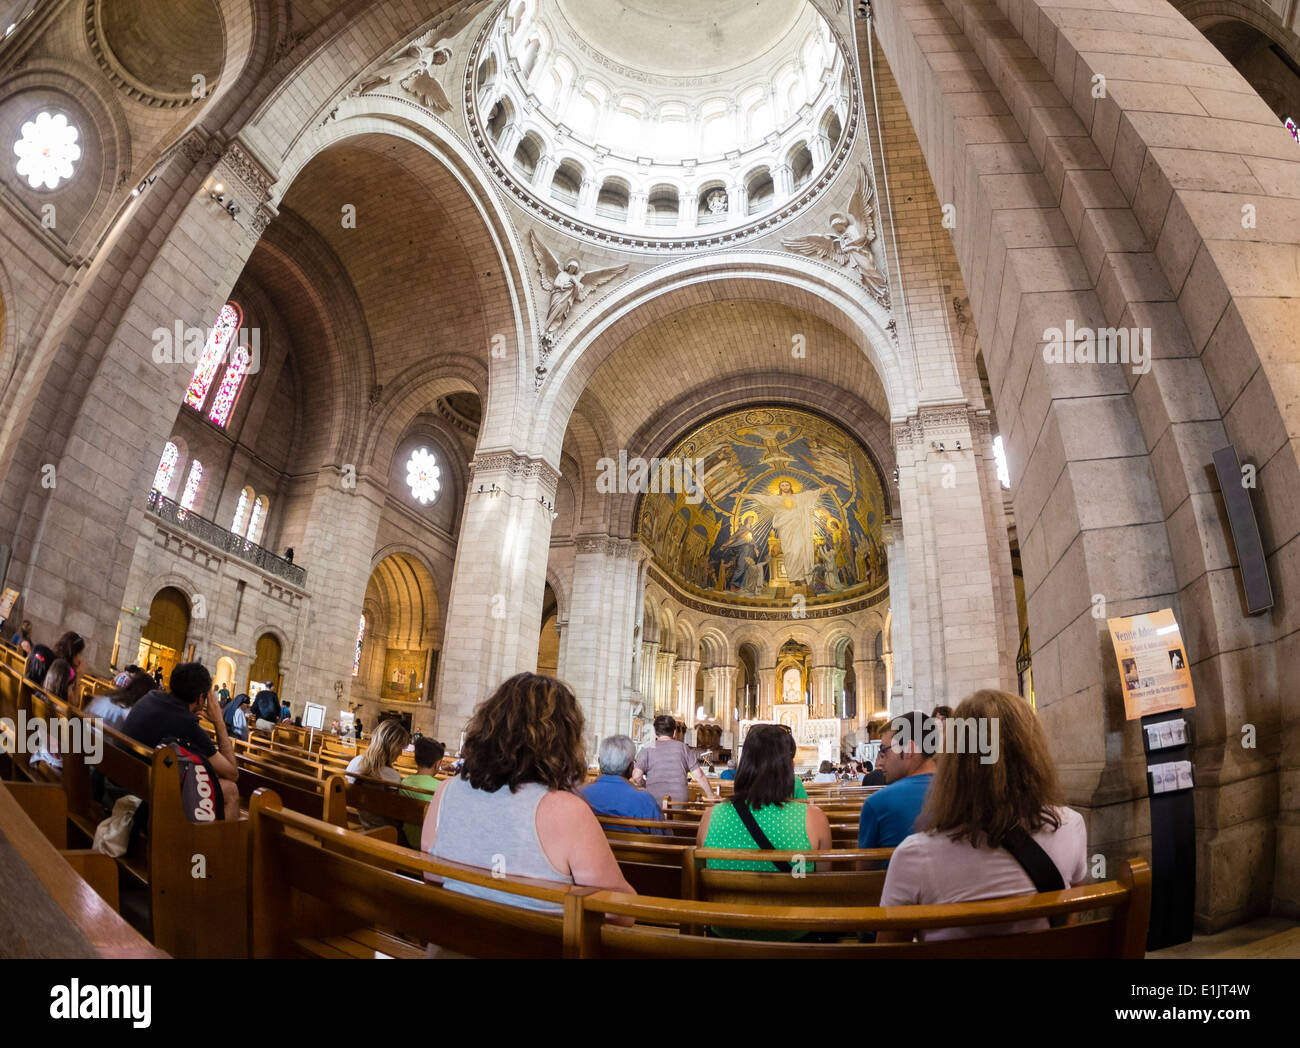 Tourists visit the Basilica of the Sacre Coeur on the Montmartre hill in Paris. Stock Photo